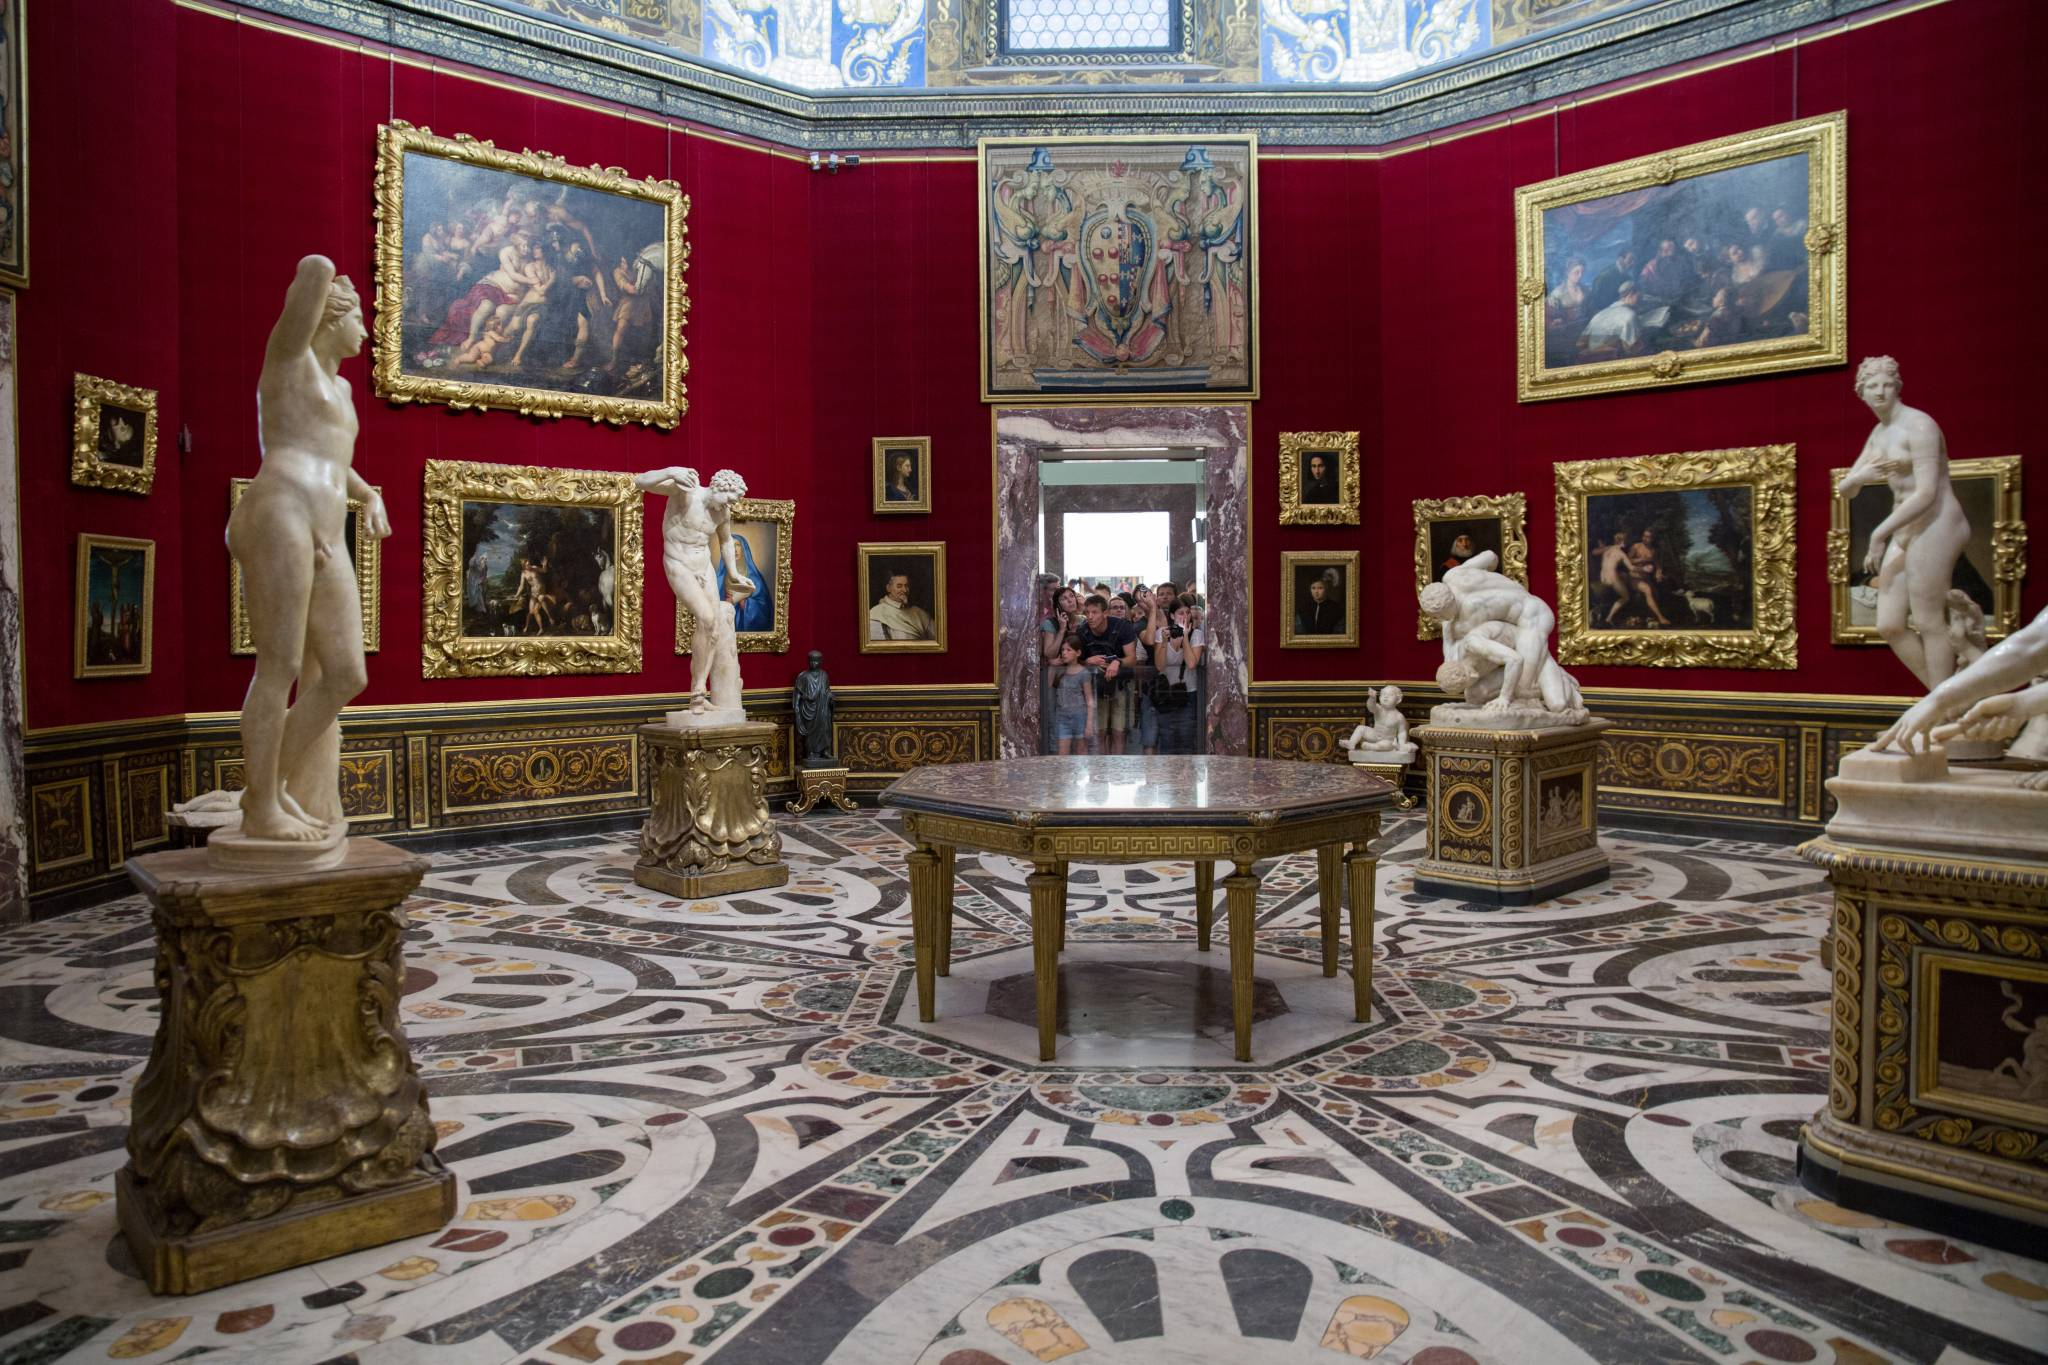 Visit Uffizi Gallery with eTips Guide